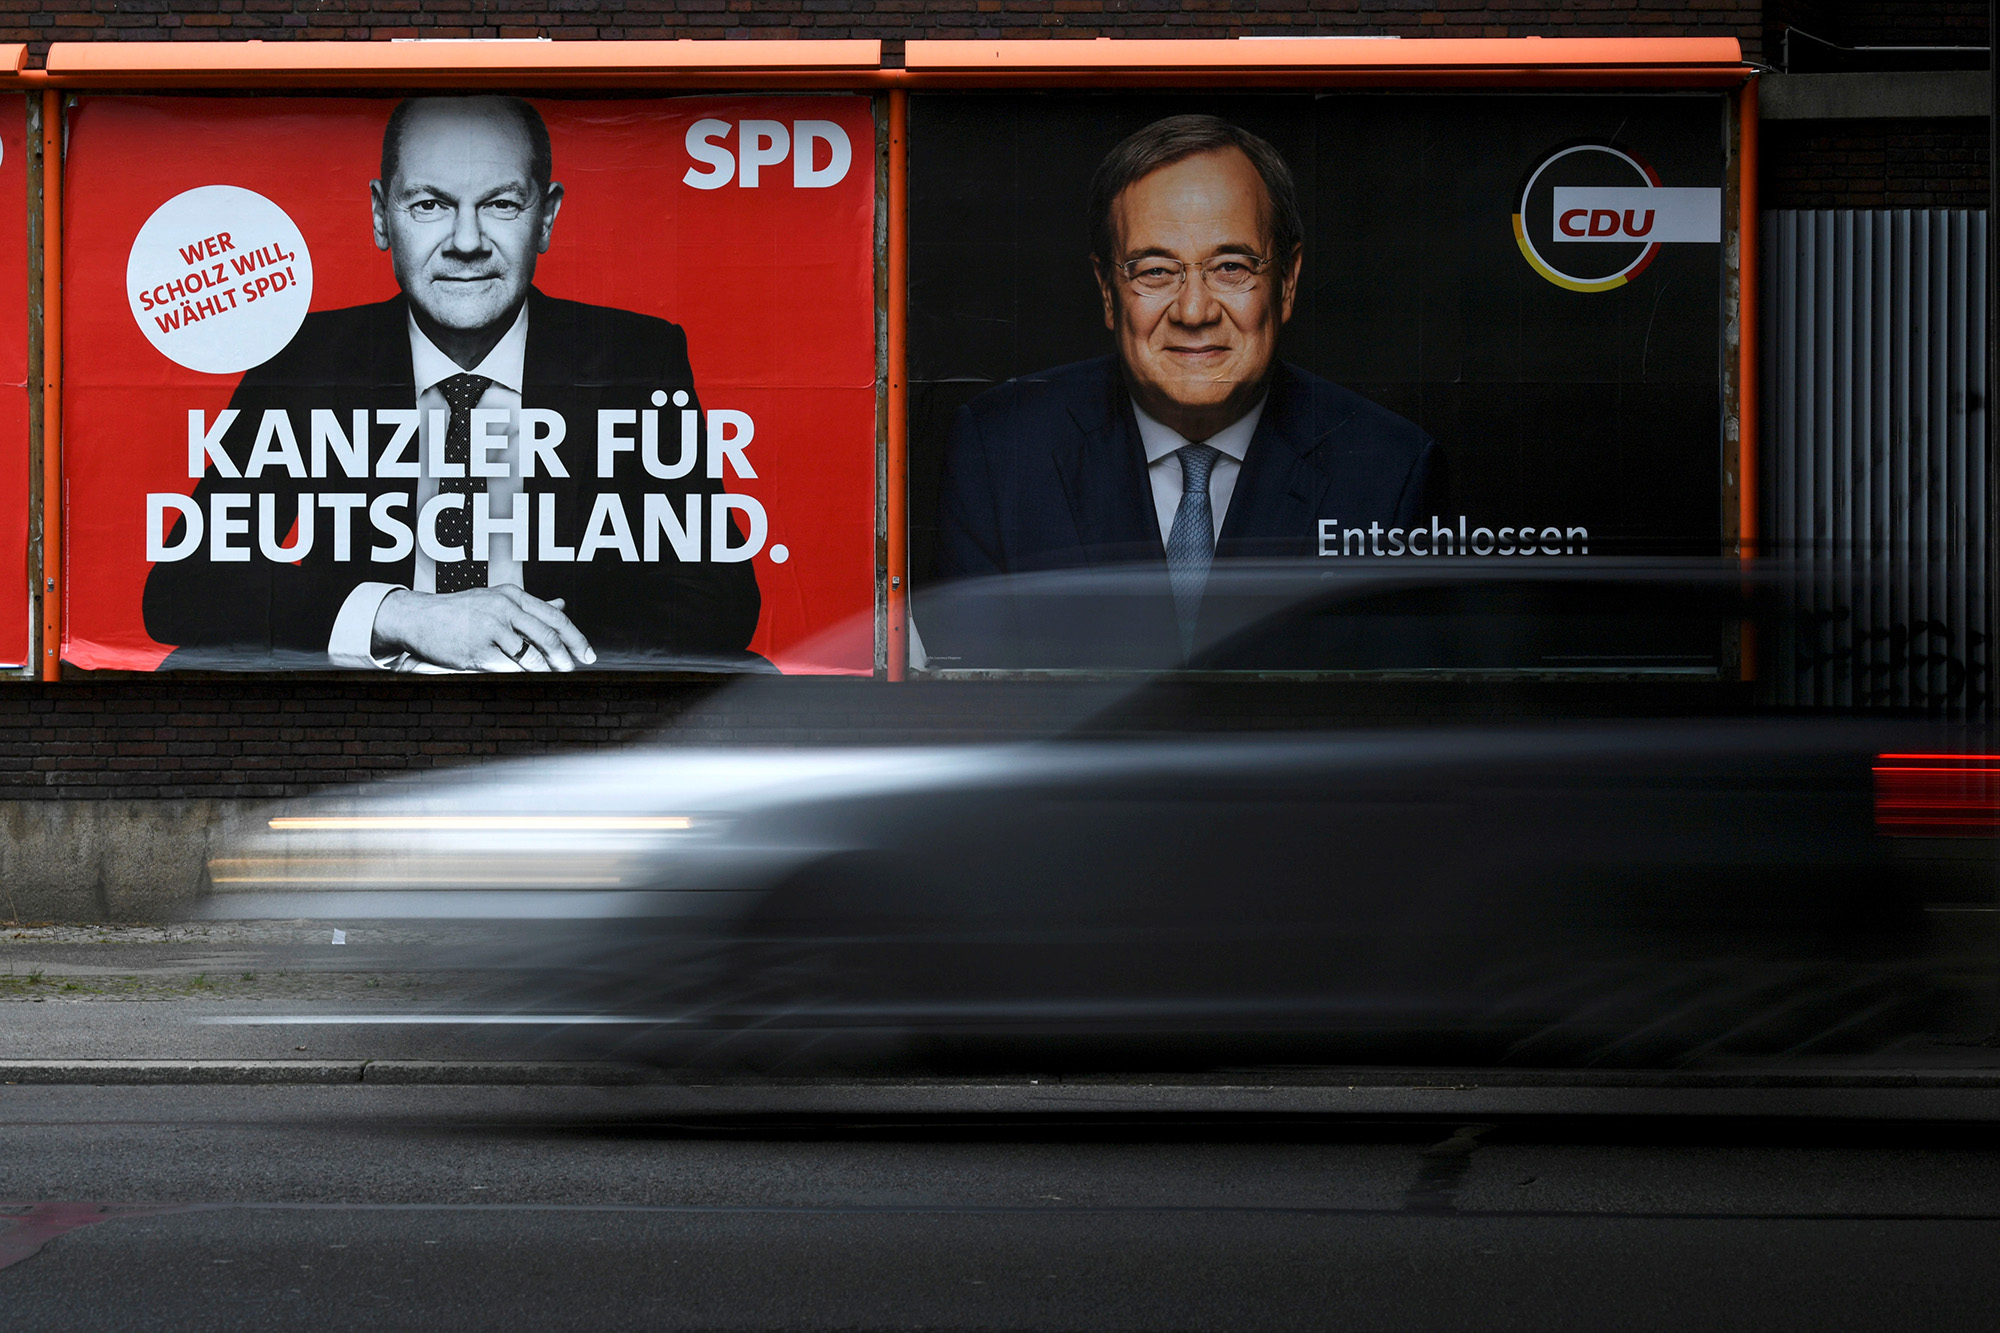 An election campaign billboard, featuring the top candidates for chancellor, Social Democratic Party's (SPD) Olaf Scholz and Christian Democratic Union's (CDU) Armin Laschet, is pictured on a street in Berlin, Germany, September 23, 2021. REUTERS/Annegret Hilse